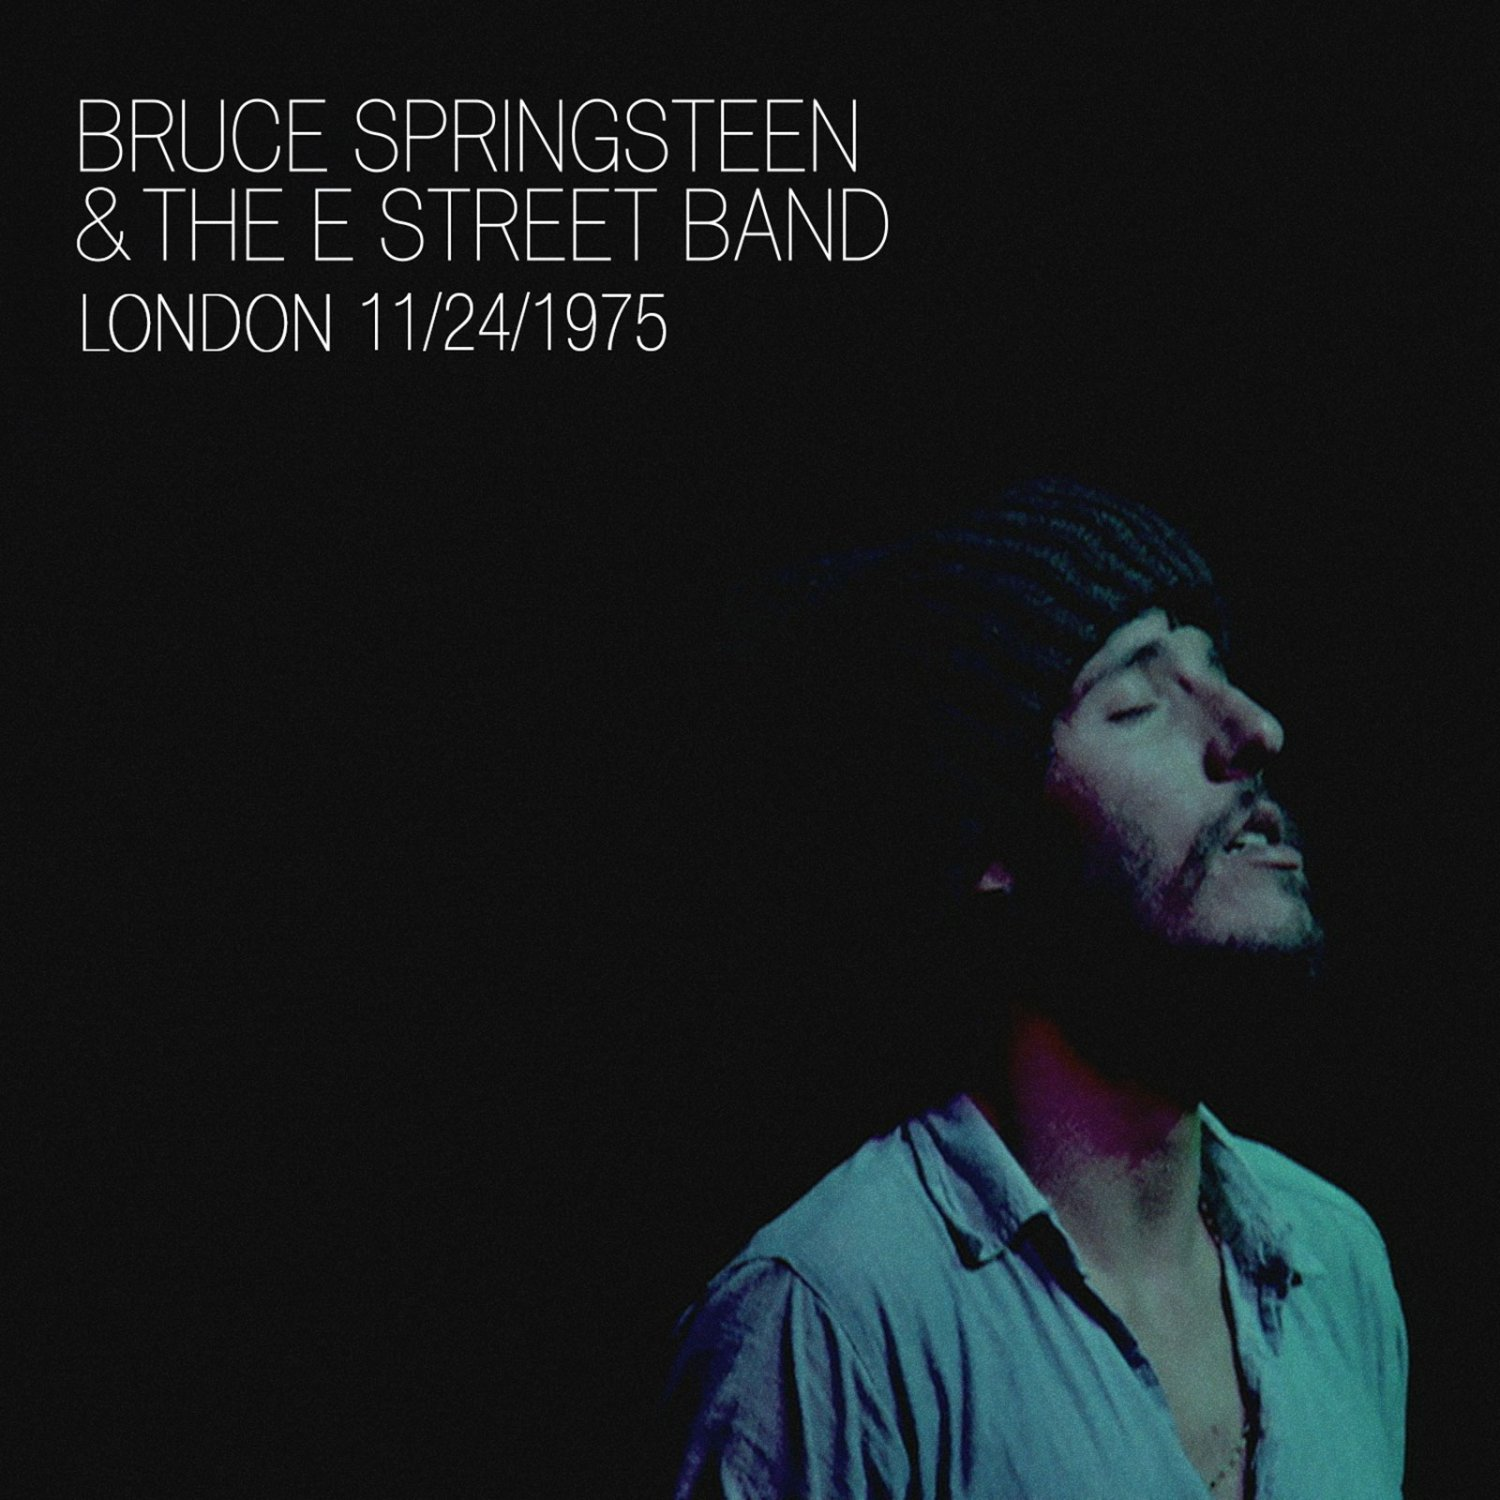 Bruce Springsteen And The E Street Band - London UK 1975 (2020) 2CD